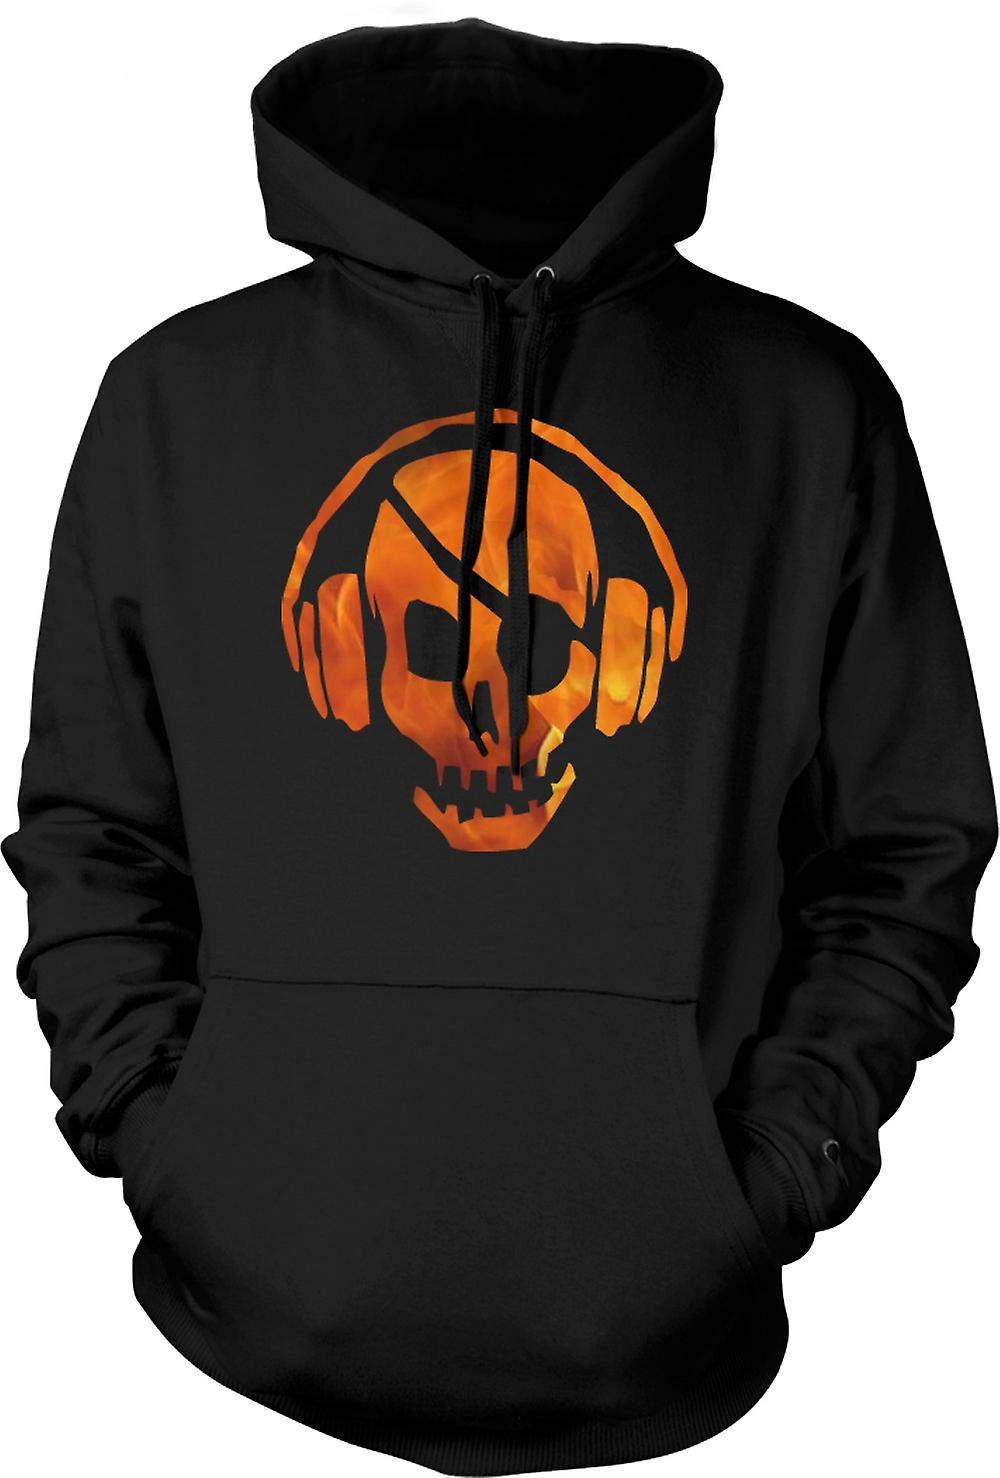 Mens Hoodie - Pirate DJ - Anti Piracy